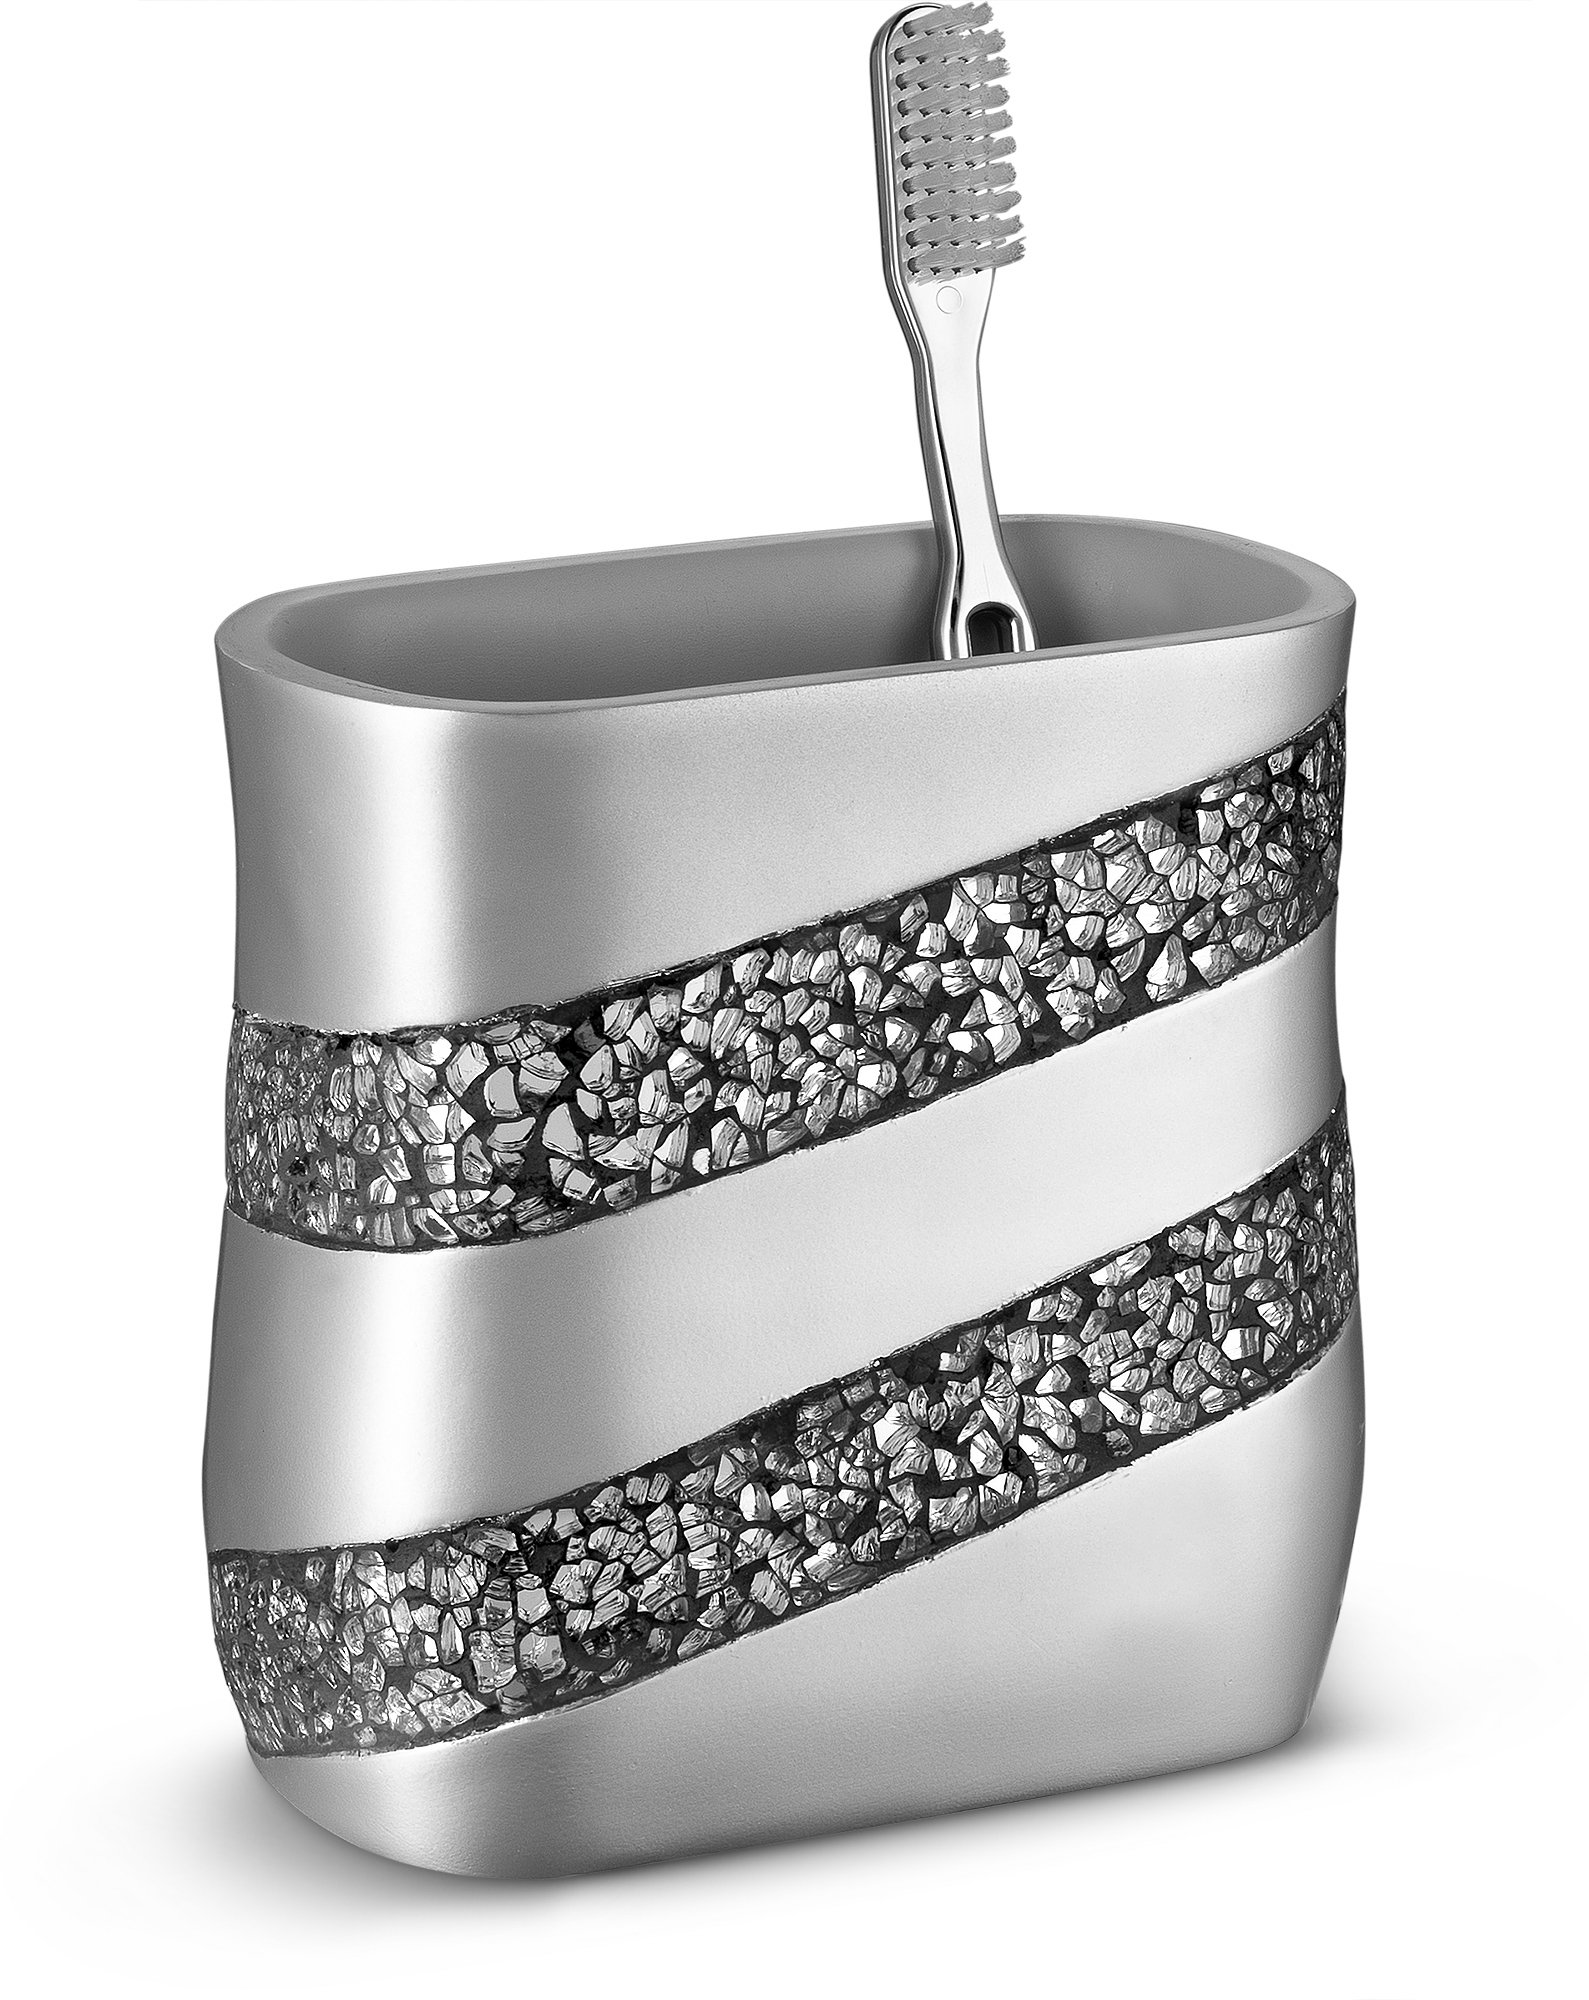 DWELLZA Silver Mosaic Bathroom Toothbrush Holder (5'' x 3'' x 5'') - Family Brush Toothpaste Cup- Holds Multiple Standard Electric Toothbrushes-for Elegant Bath Shower Decor (Silver Gray) by DWELLZA